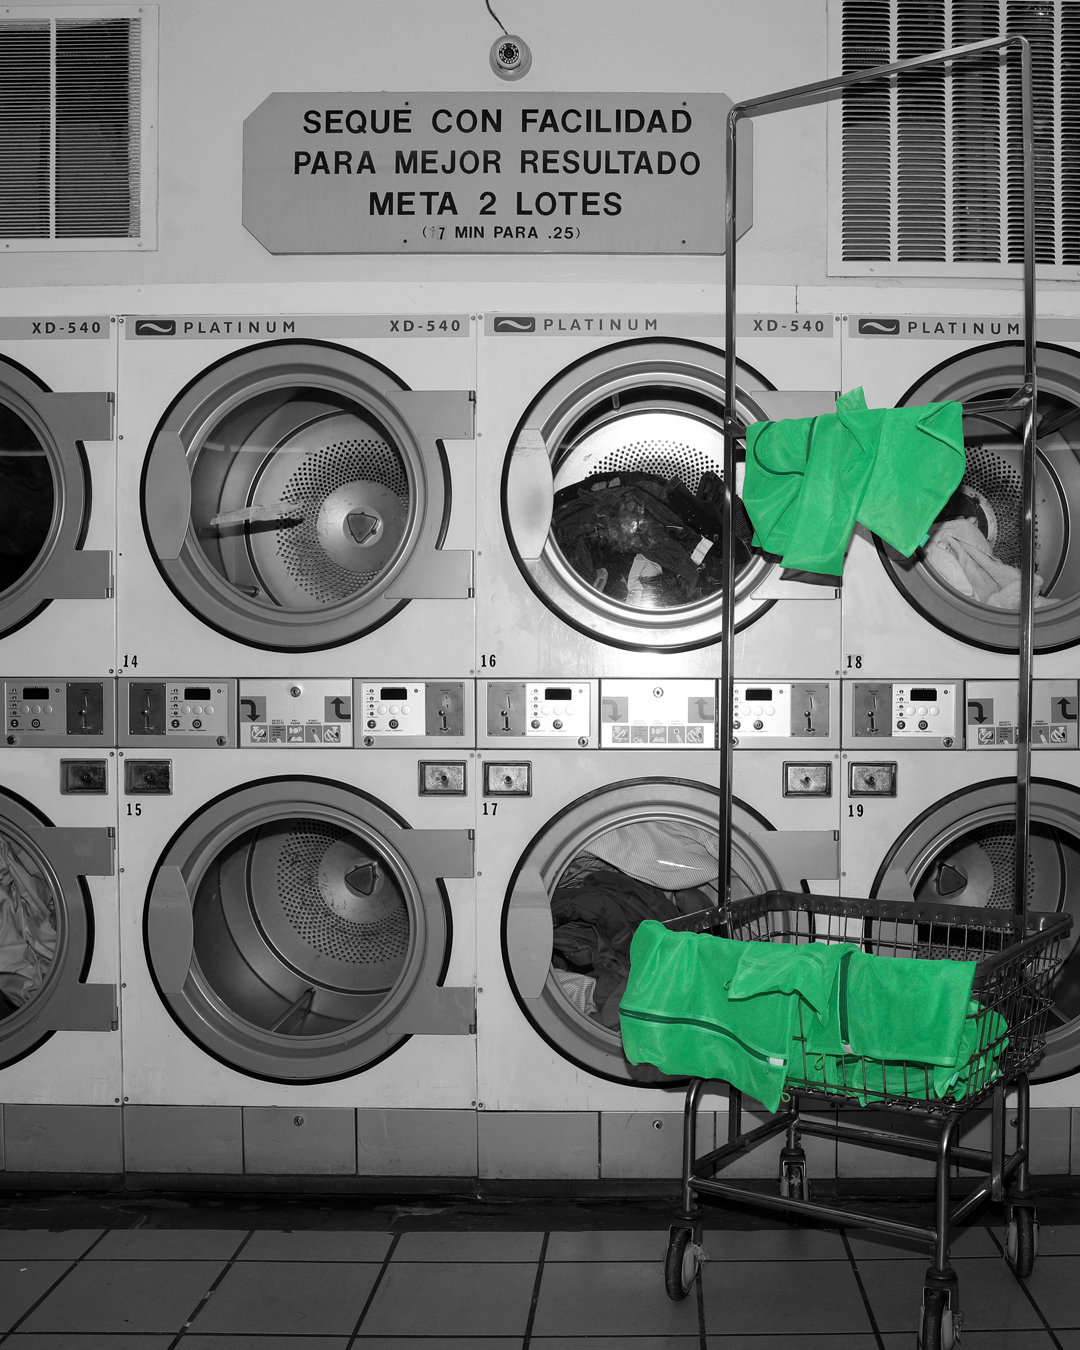 in LAUNDRY